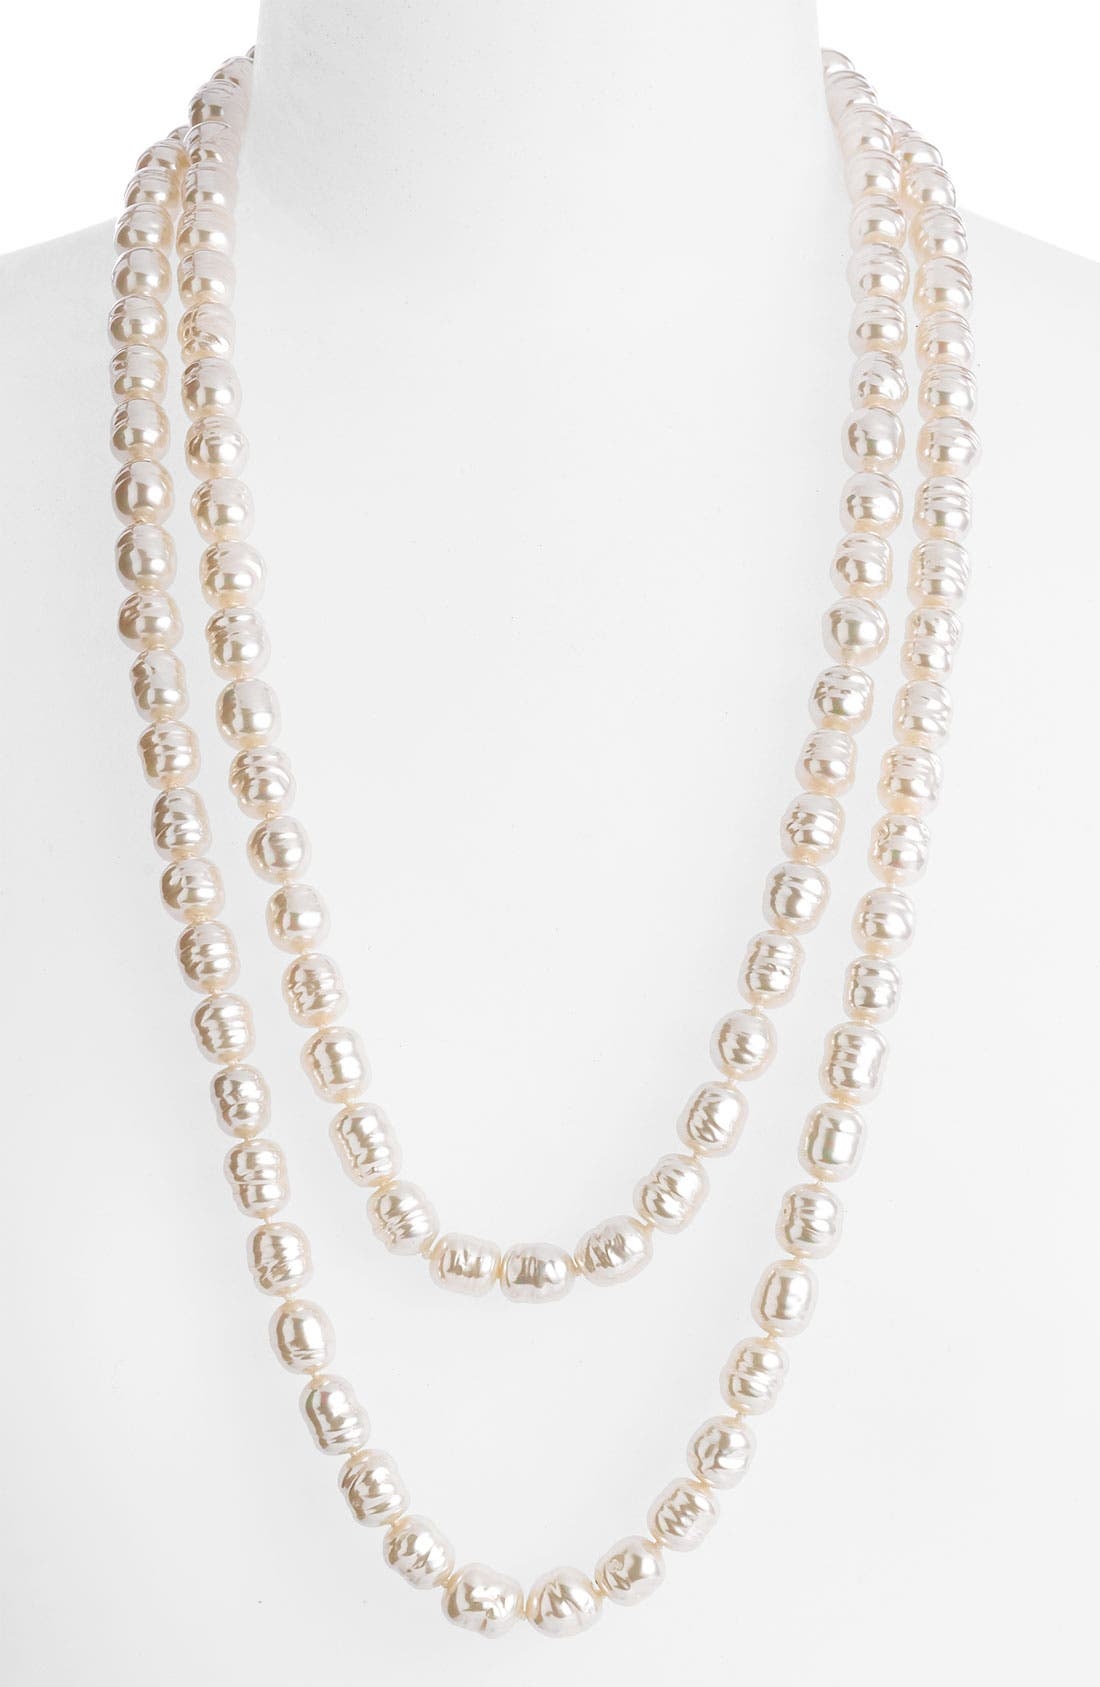 Main Image - Majorica 10mm Baroque Pearl Endless Rope Necklace